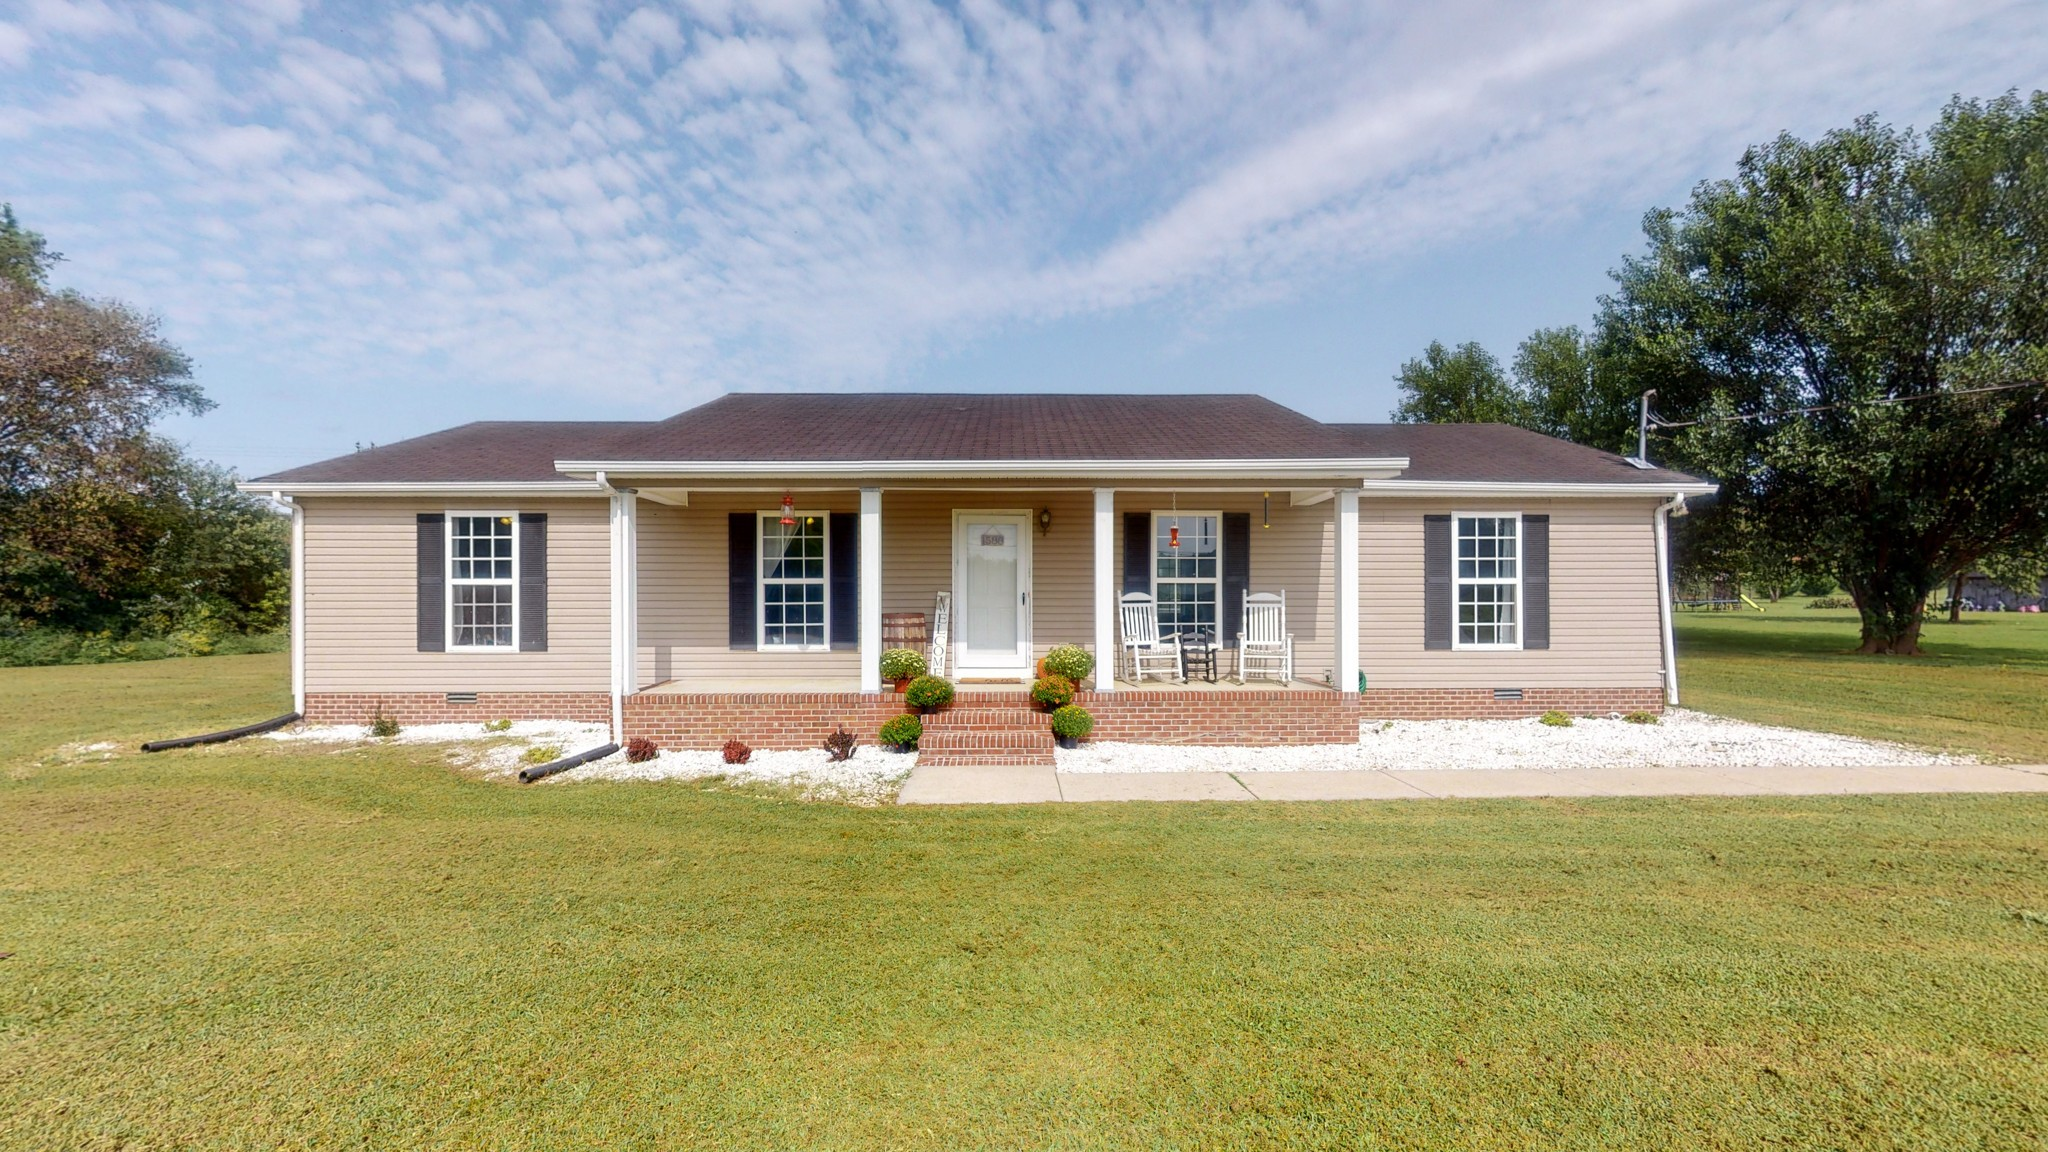 1588 Old Fayetteville Hwy Property Photo - Lynchburg, TN real estate listing